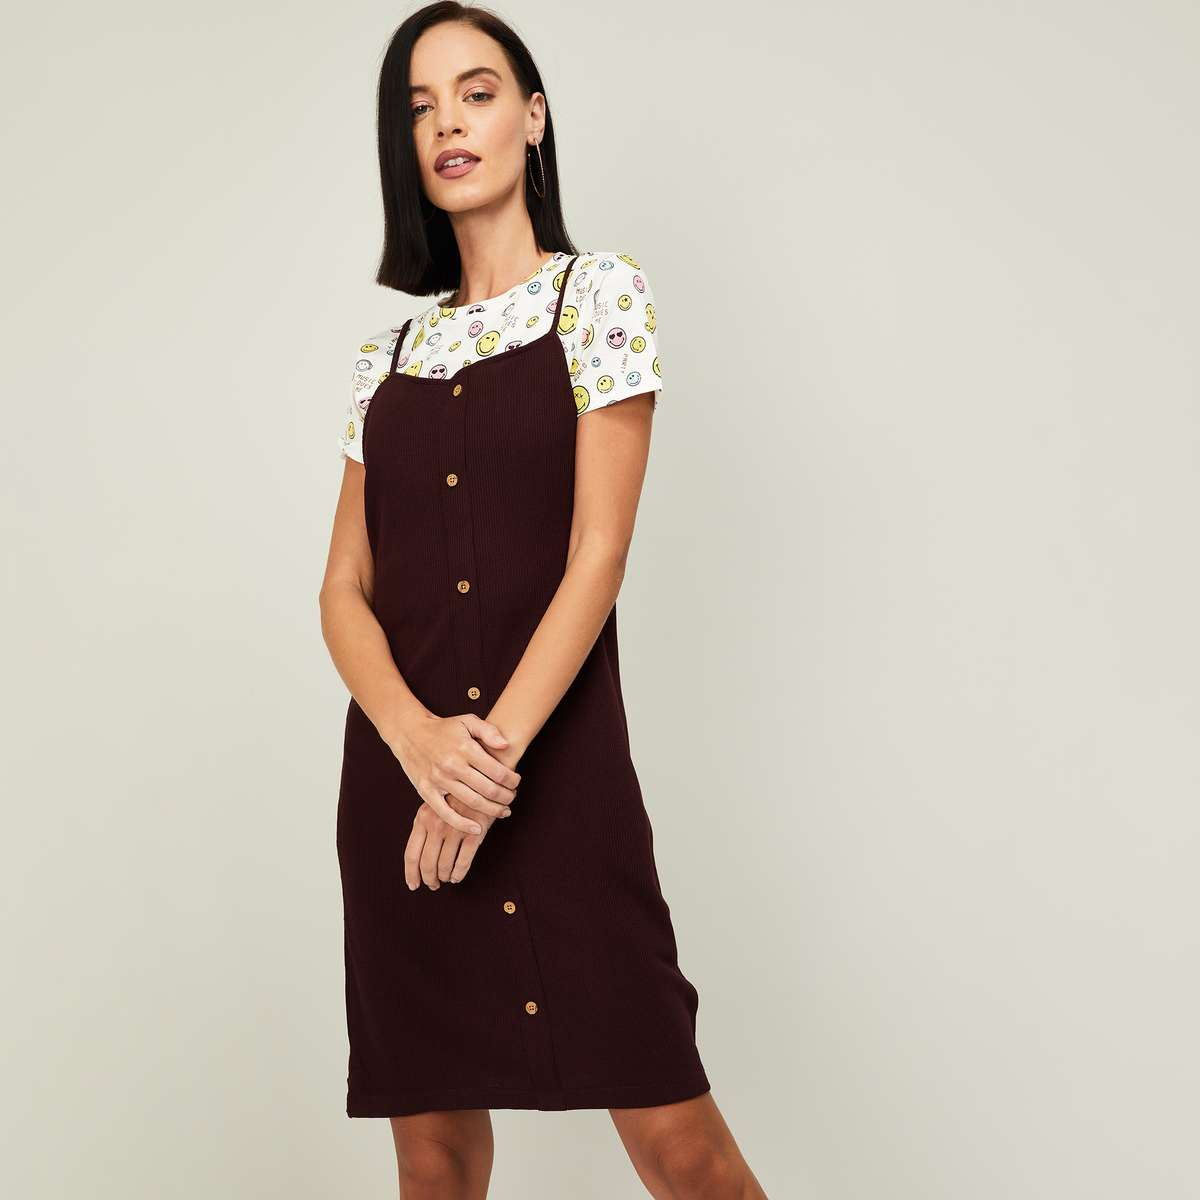 3.SMILEY WORLD Women Textured Pinafore Dress with Printed Top